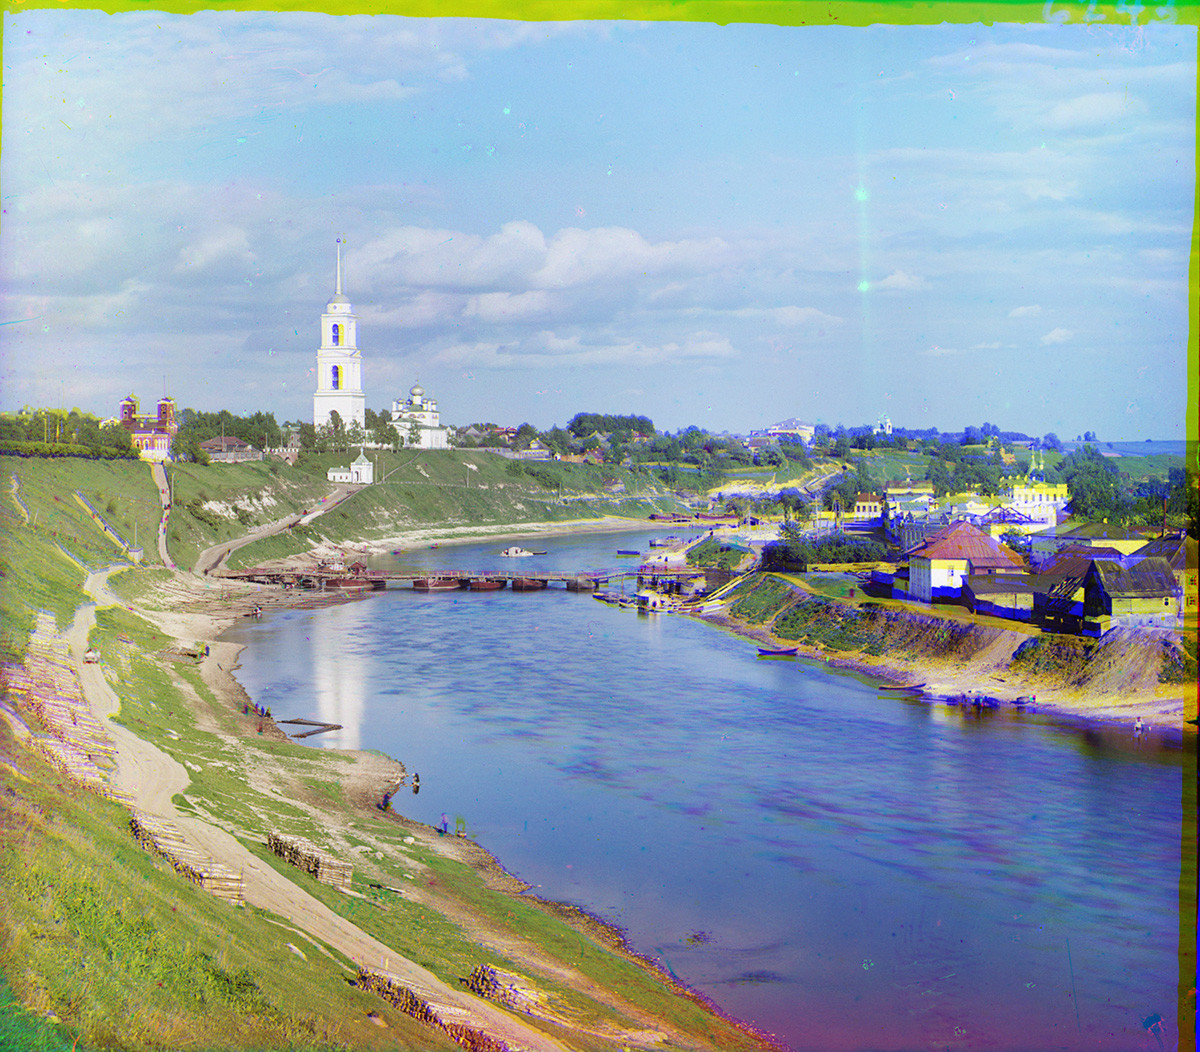 Rzhev. View east down Volga River. Left: Prince Fyodor Side with Dormition Cathedral & bell tower (all destroyed during World War II). Right: Prince Dmitry Side. Summer 1910.